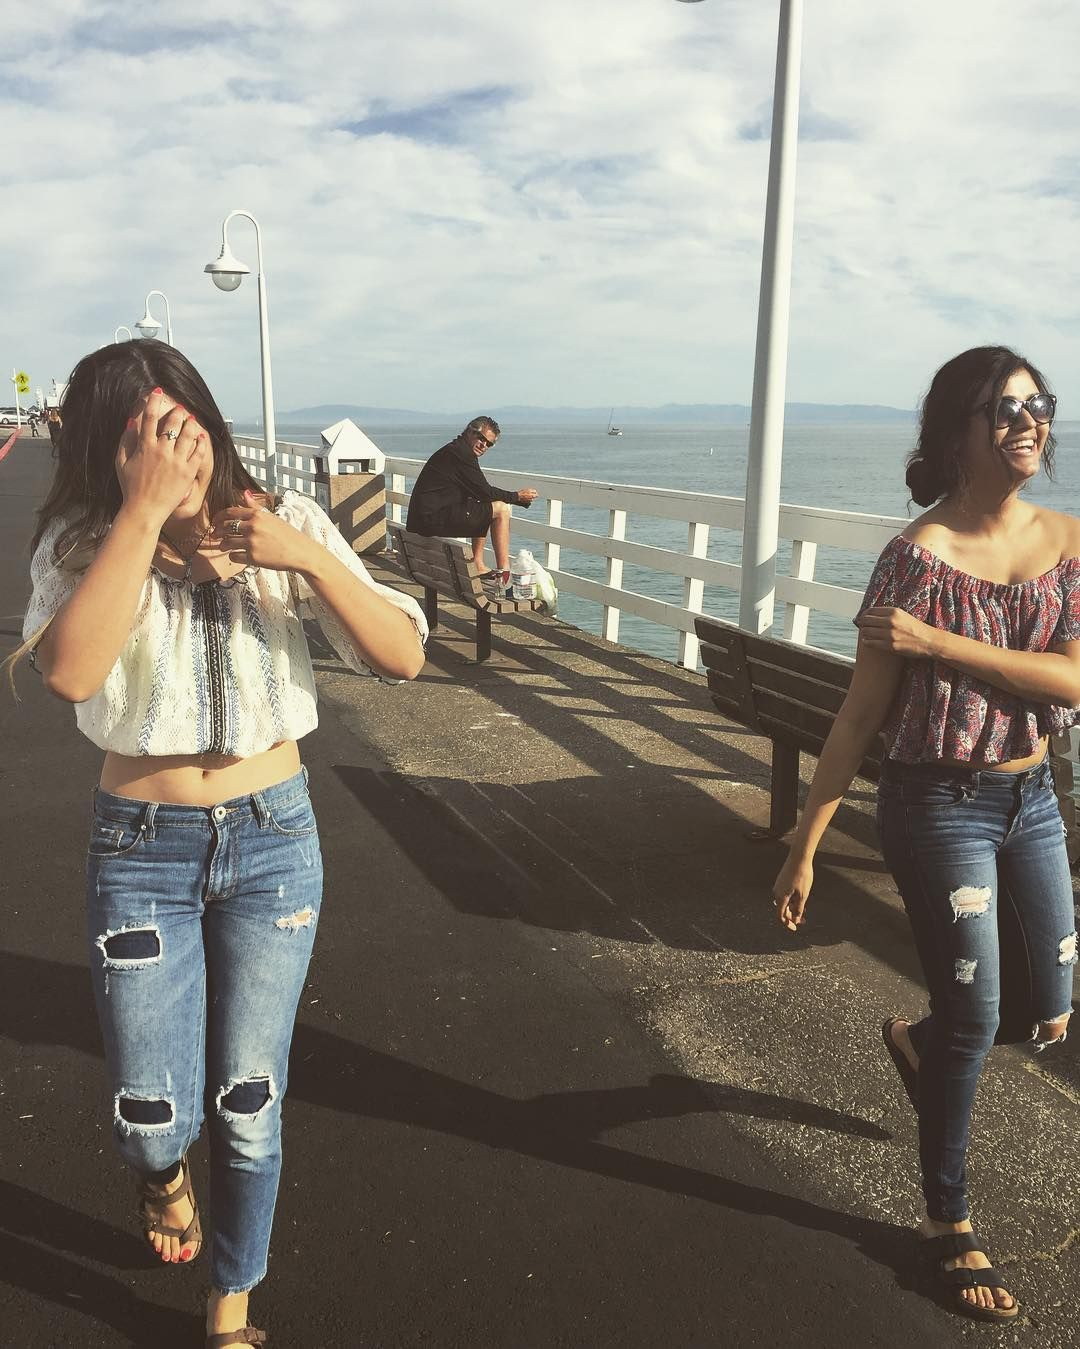 Santa Cruz CA: Guy in the back: maybe if I wear my shades they won't notice me staring at them by ashleyyvone